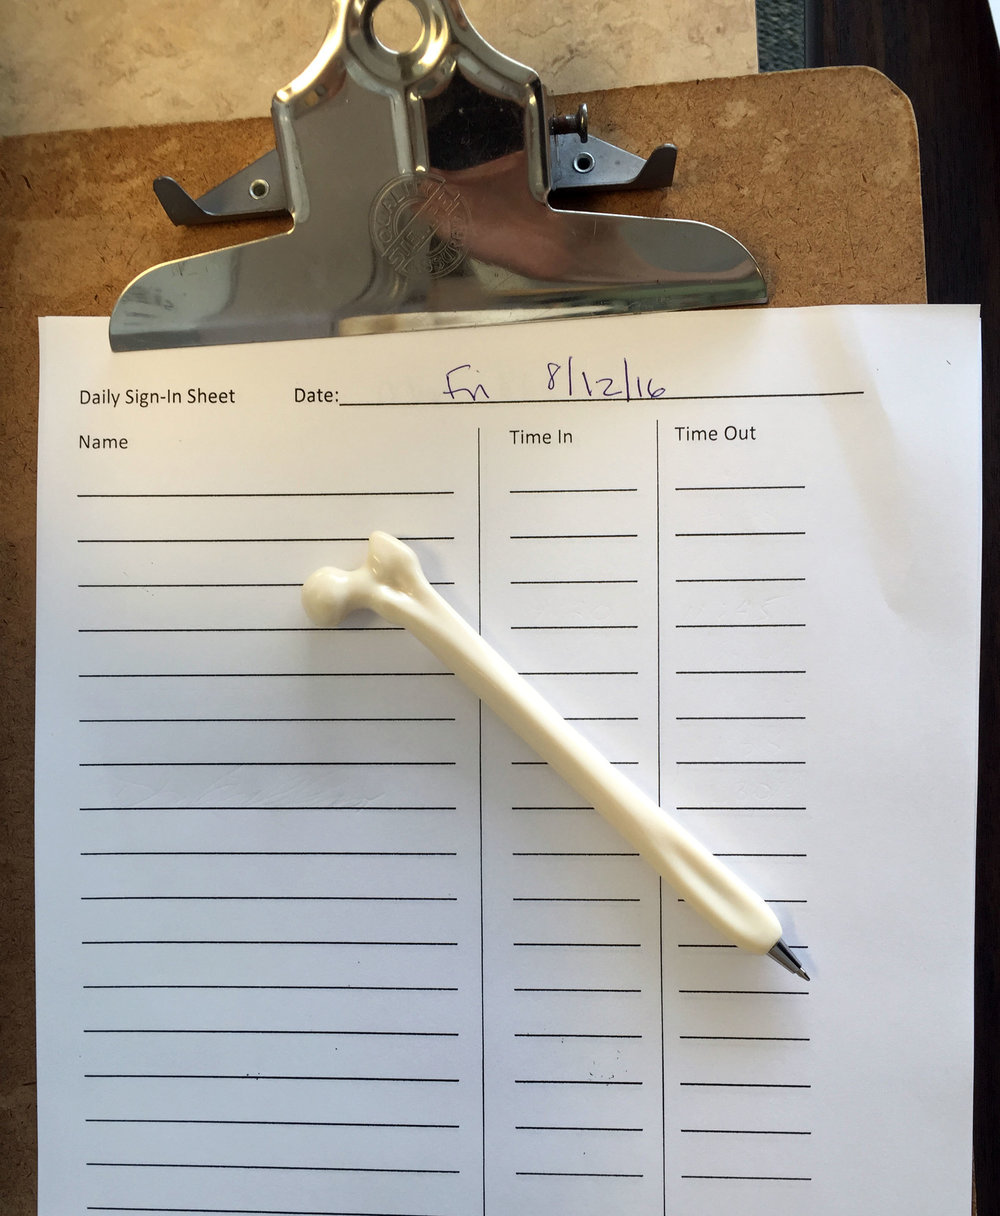 Sign in sheet at the physical therapy clinic where we did our contextual inquiry